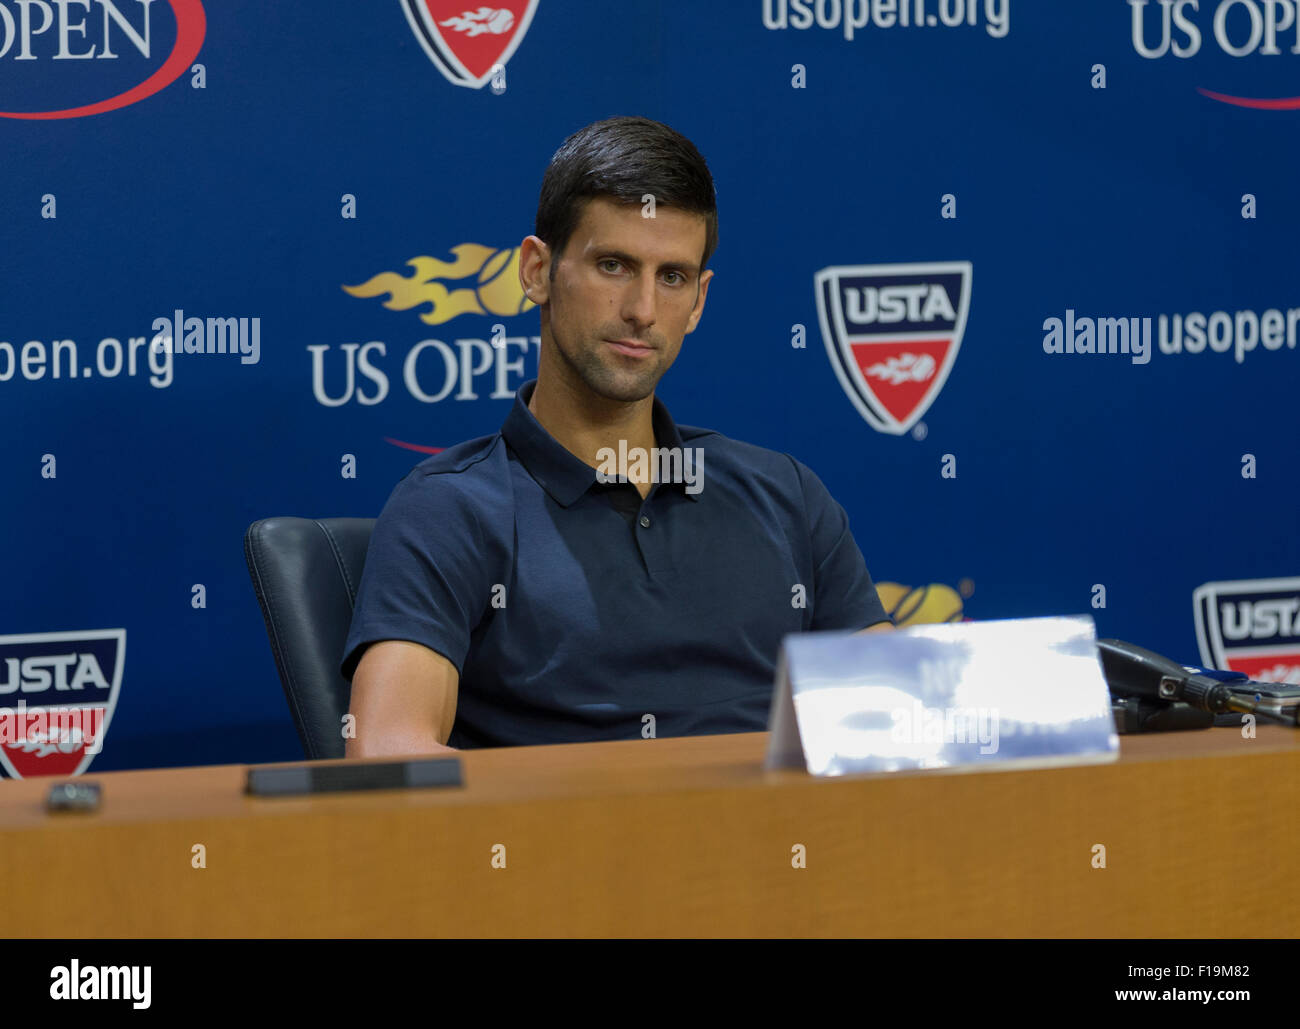 New York, NY - August 29, 2015: Novak Djokovic of Serbia attends press conference at US Open Championship in Arthur - Stock Image